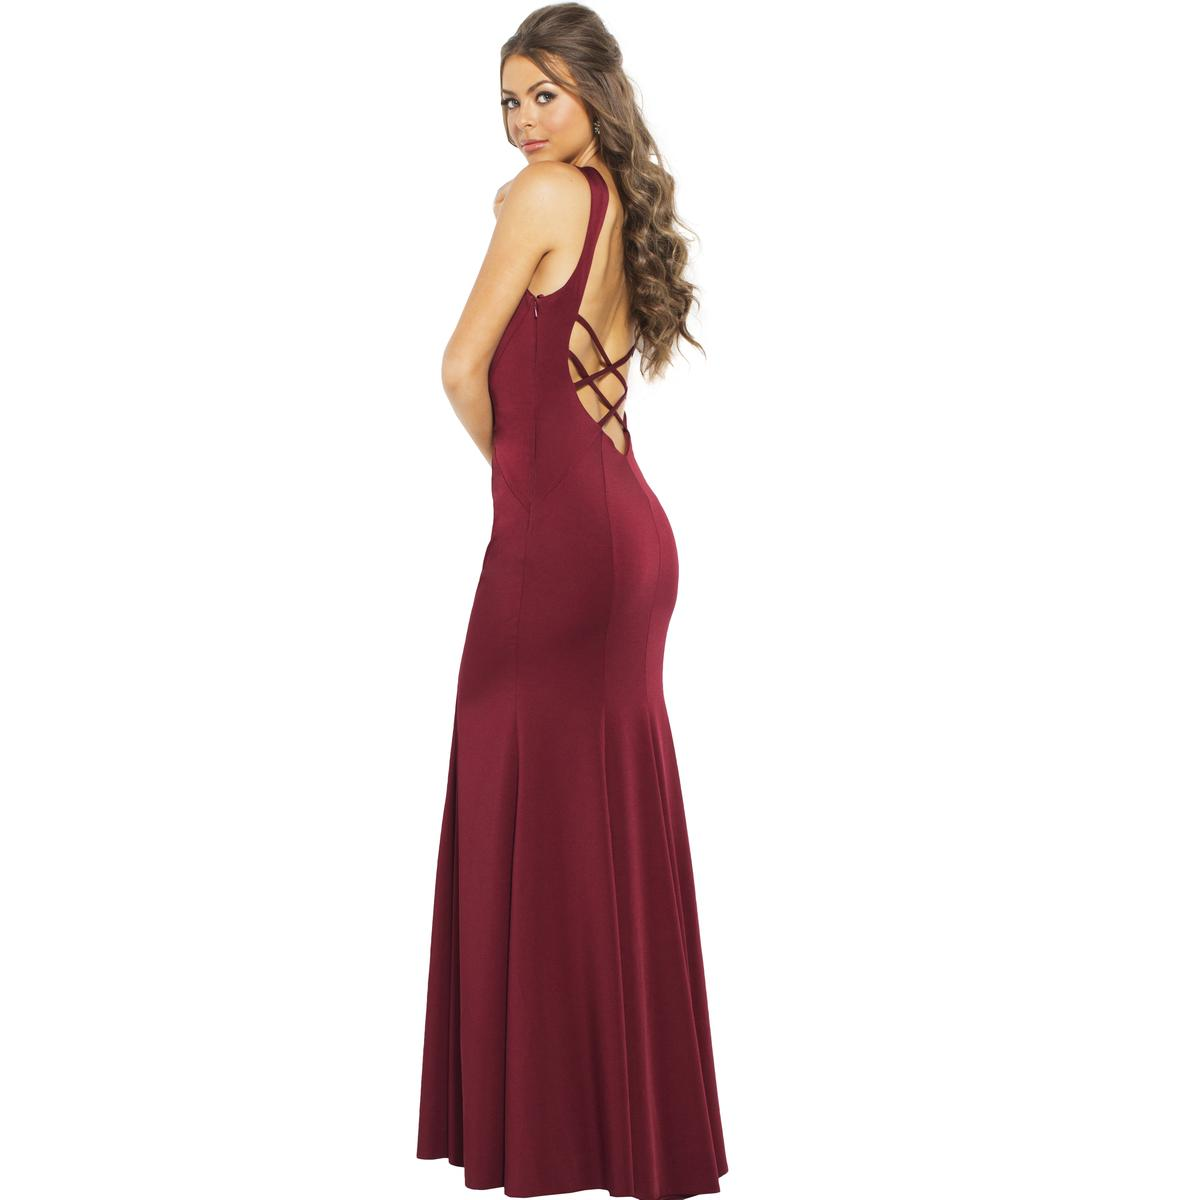 JVN by Jovani Womens 59336A Prom Illusion Open Back Evening Dress ... 95c17d935a